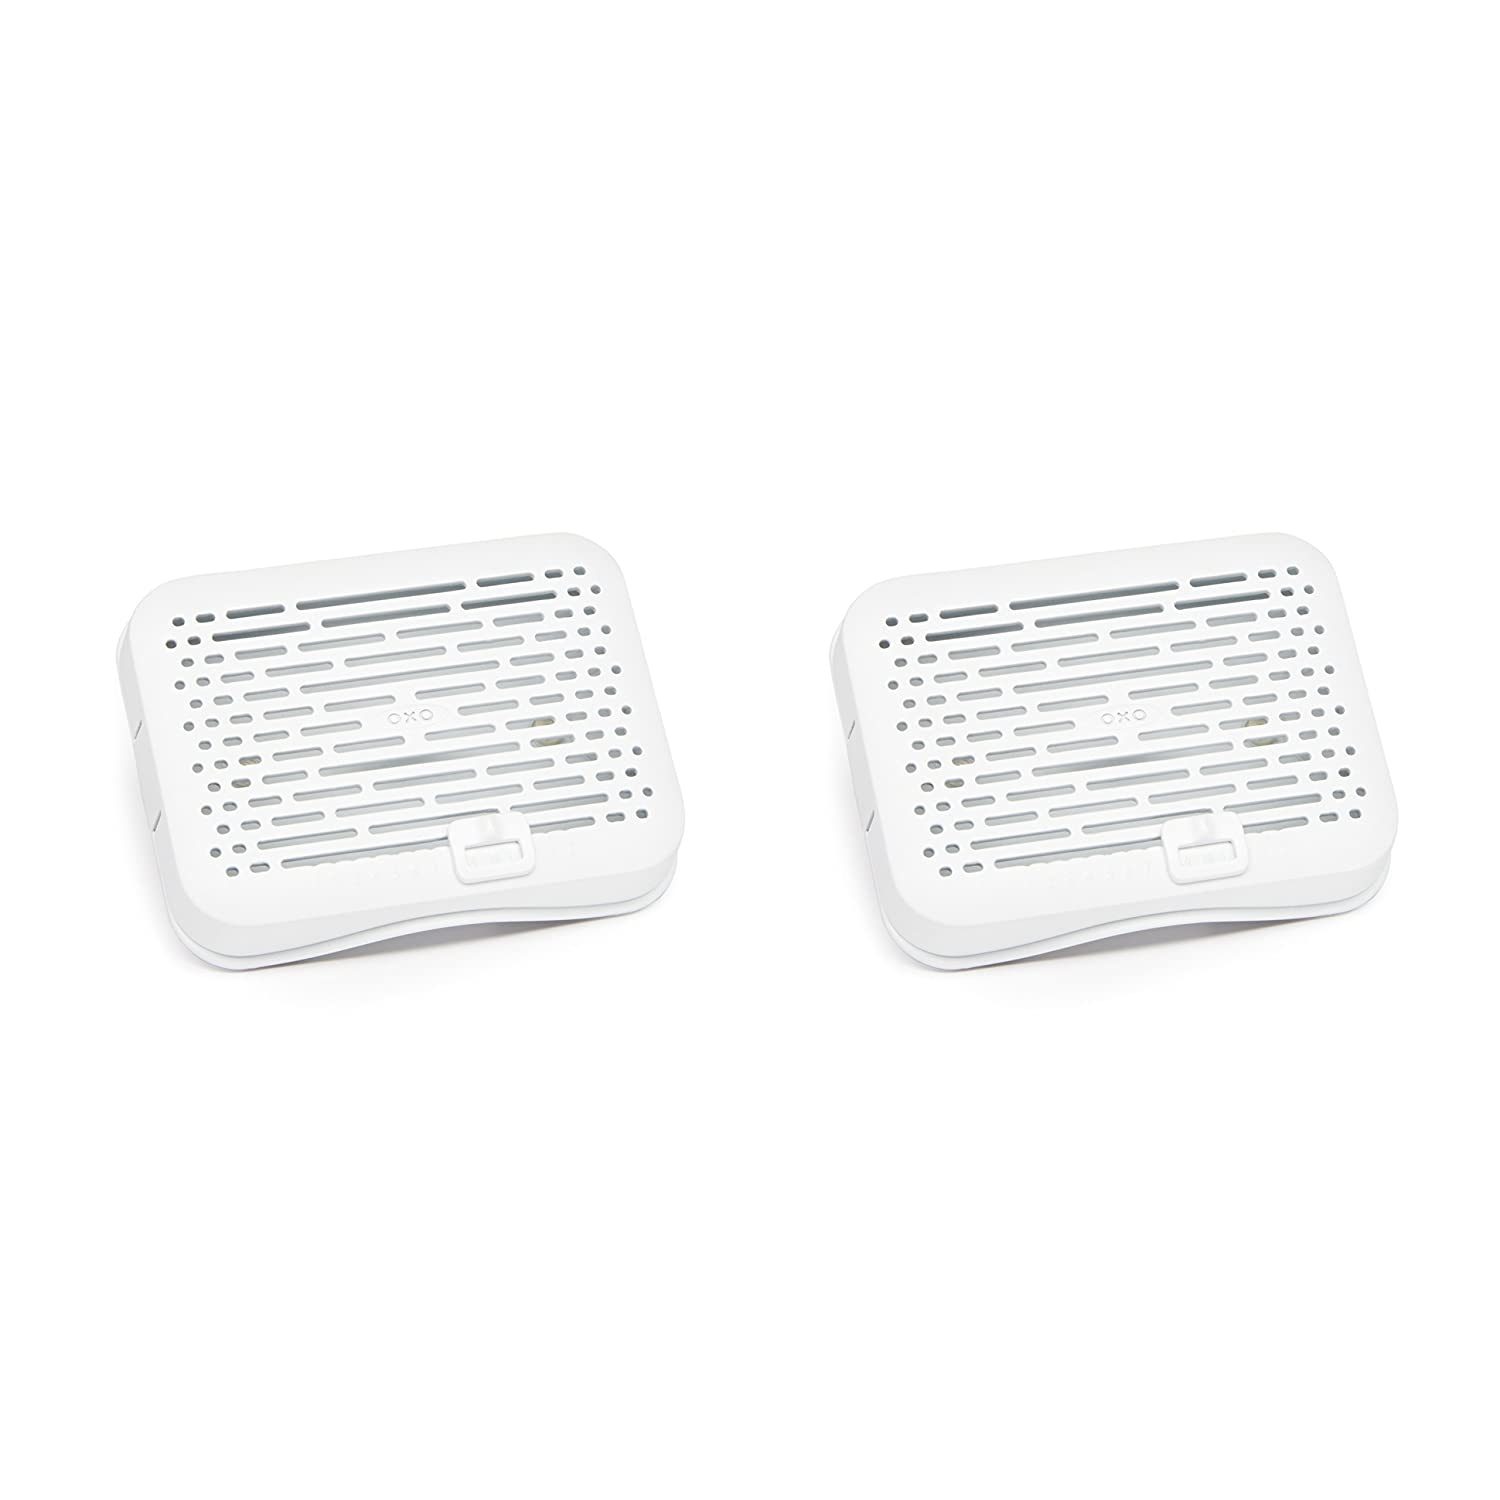 OXO Good Grips GreenSaver Mounted Crisper Drawer Insert with Suction Cups (2 Pack)